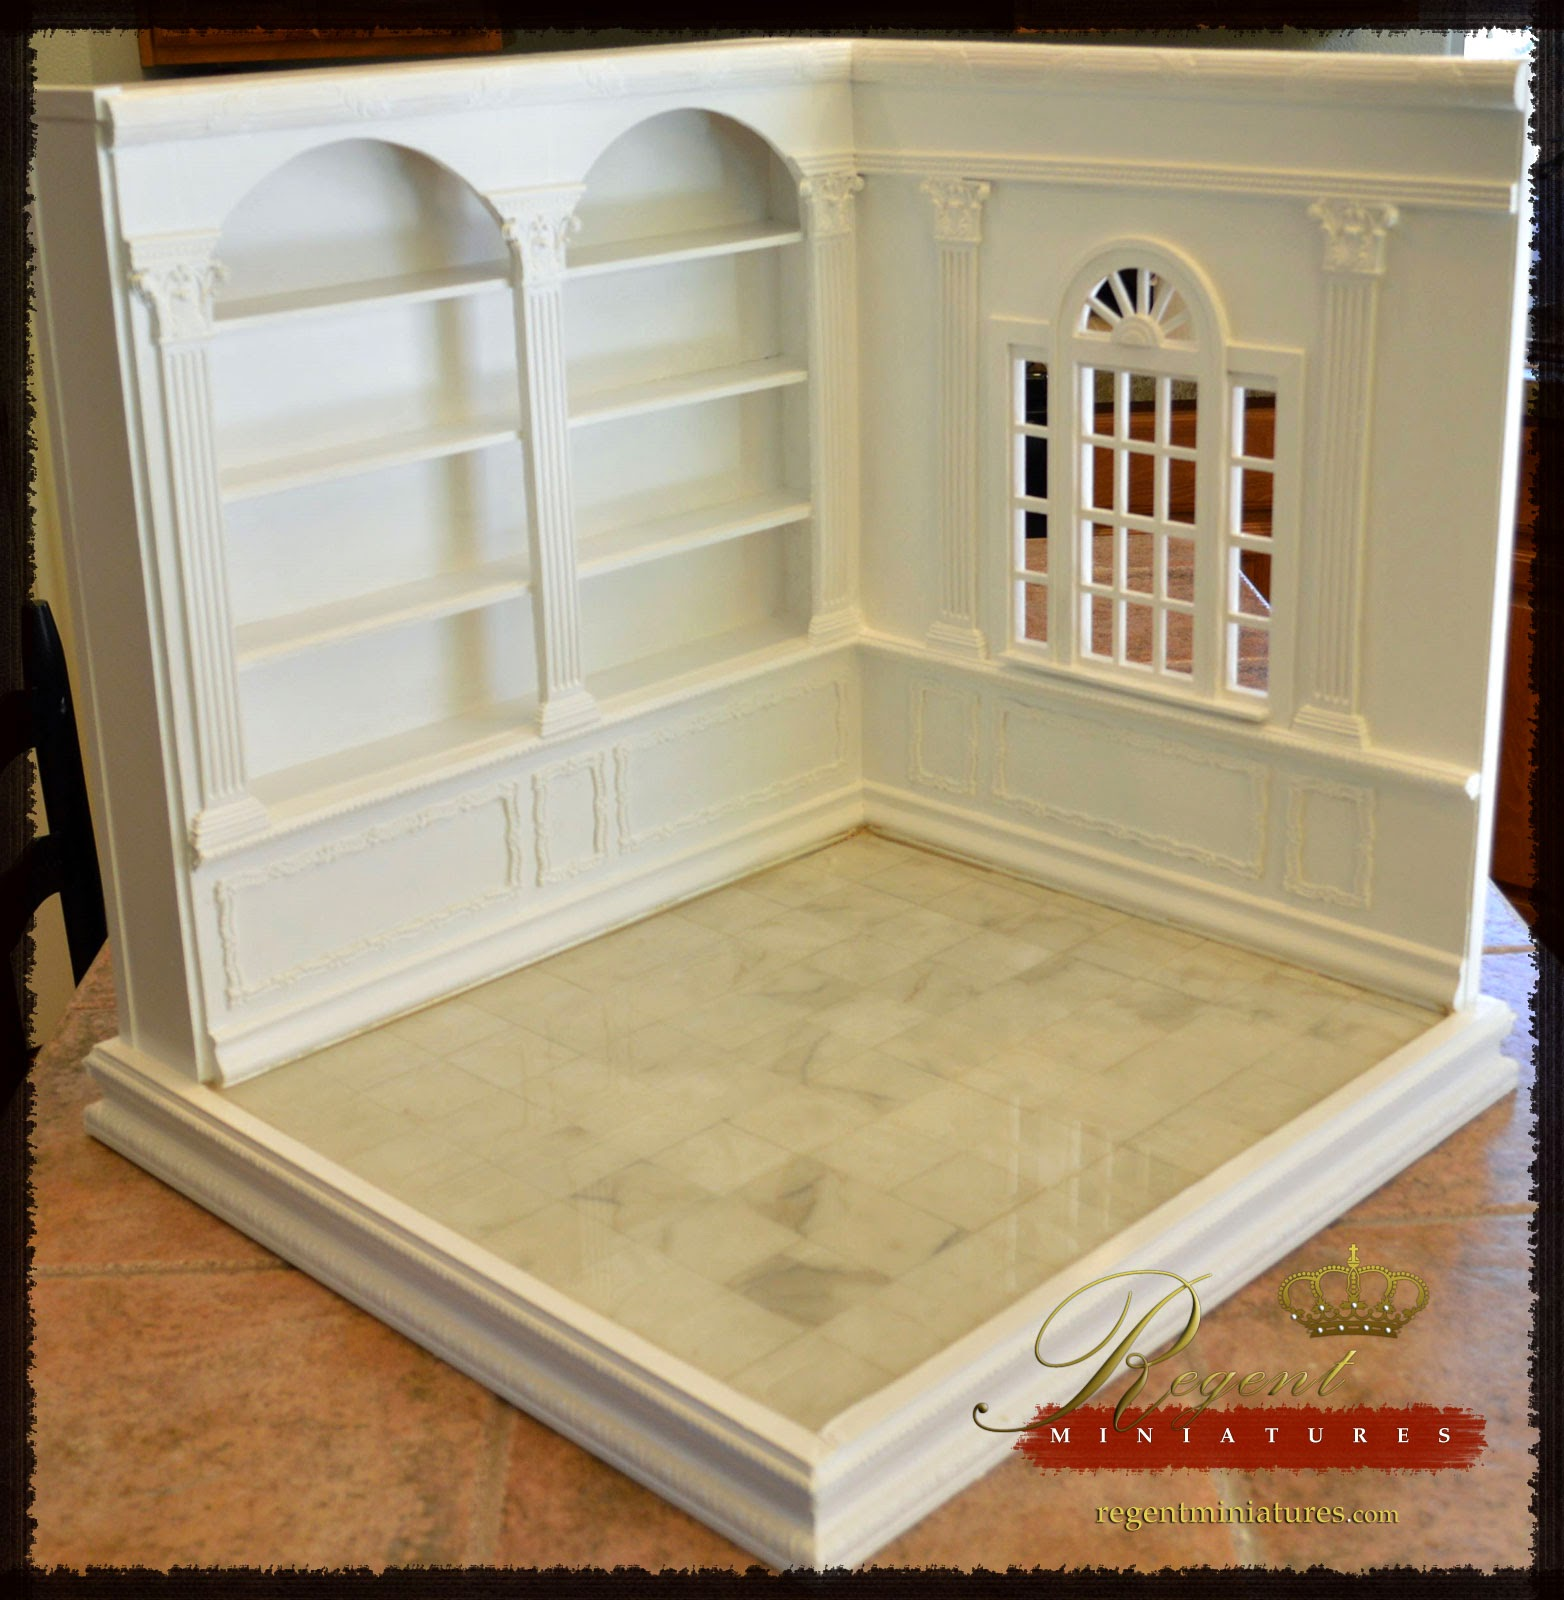 regent miniatures 1 6 scale room box with library coming. Black Bedroom Furniture Sets. Home Design Ideas